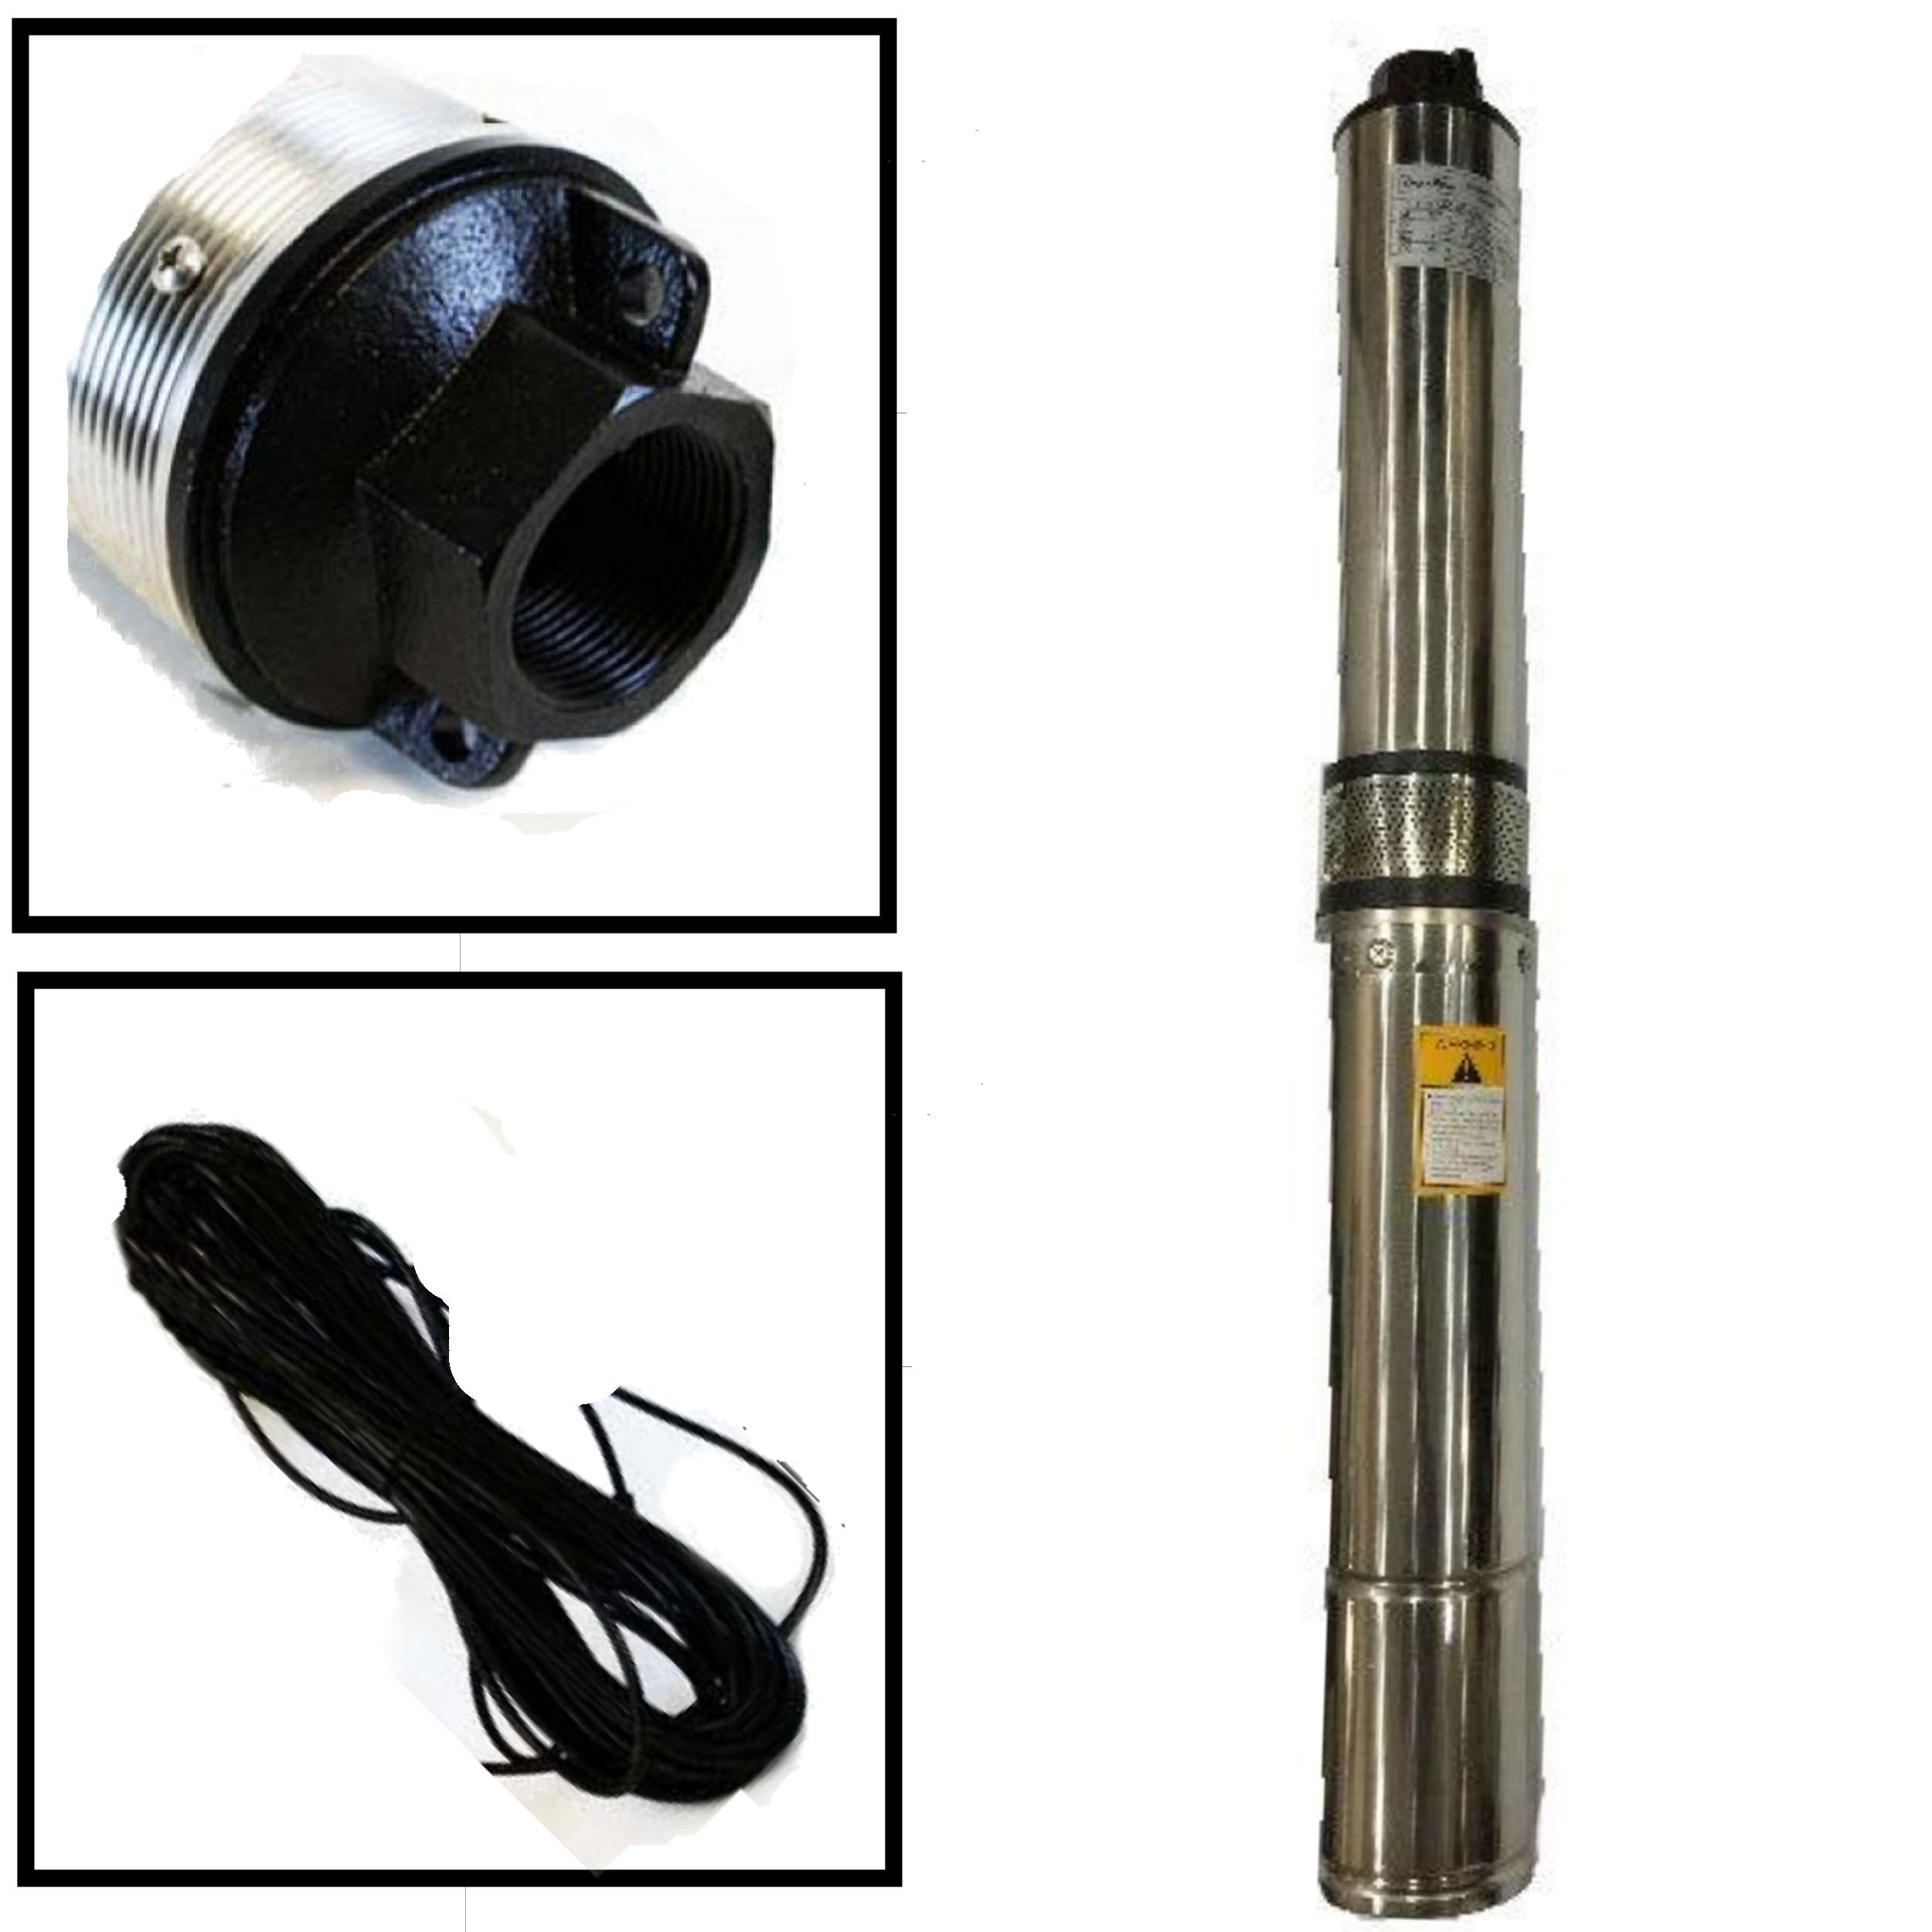 NEW Deep Well Submersible Pump, 4'' 1/2 HP, 220V, 25 GPM, 150 ft Max, long life